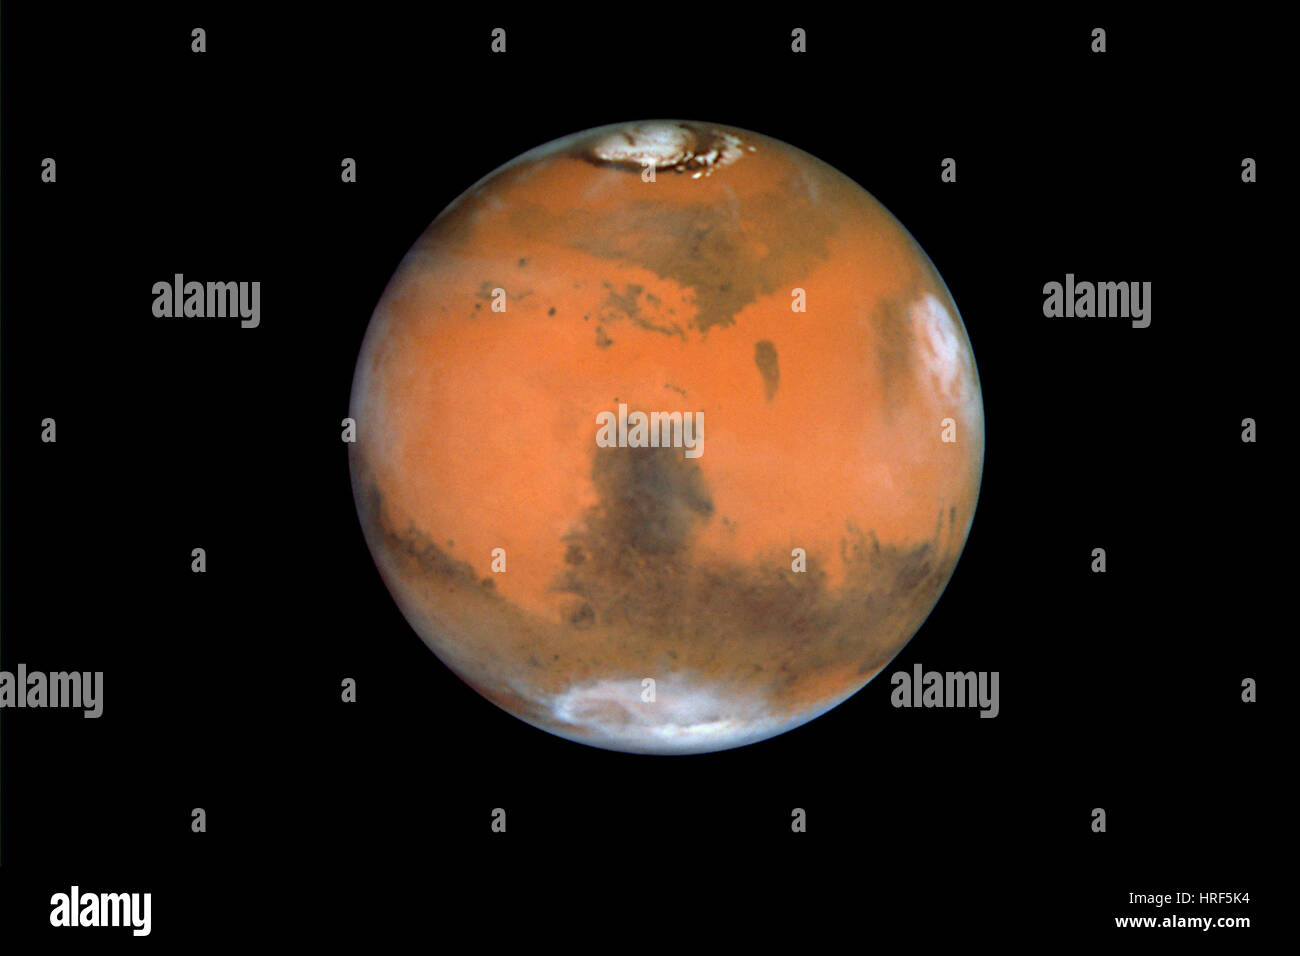 Solar System Map Stock Photos & Solar System Map Stock Images - Alamy